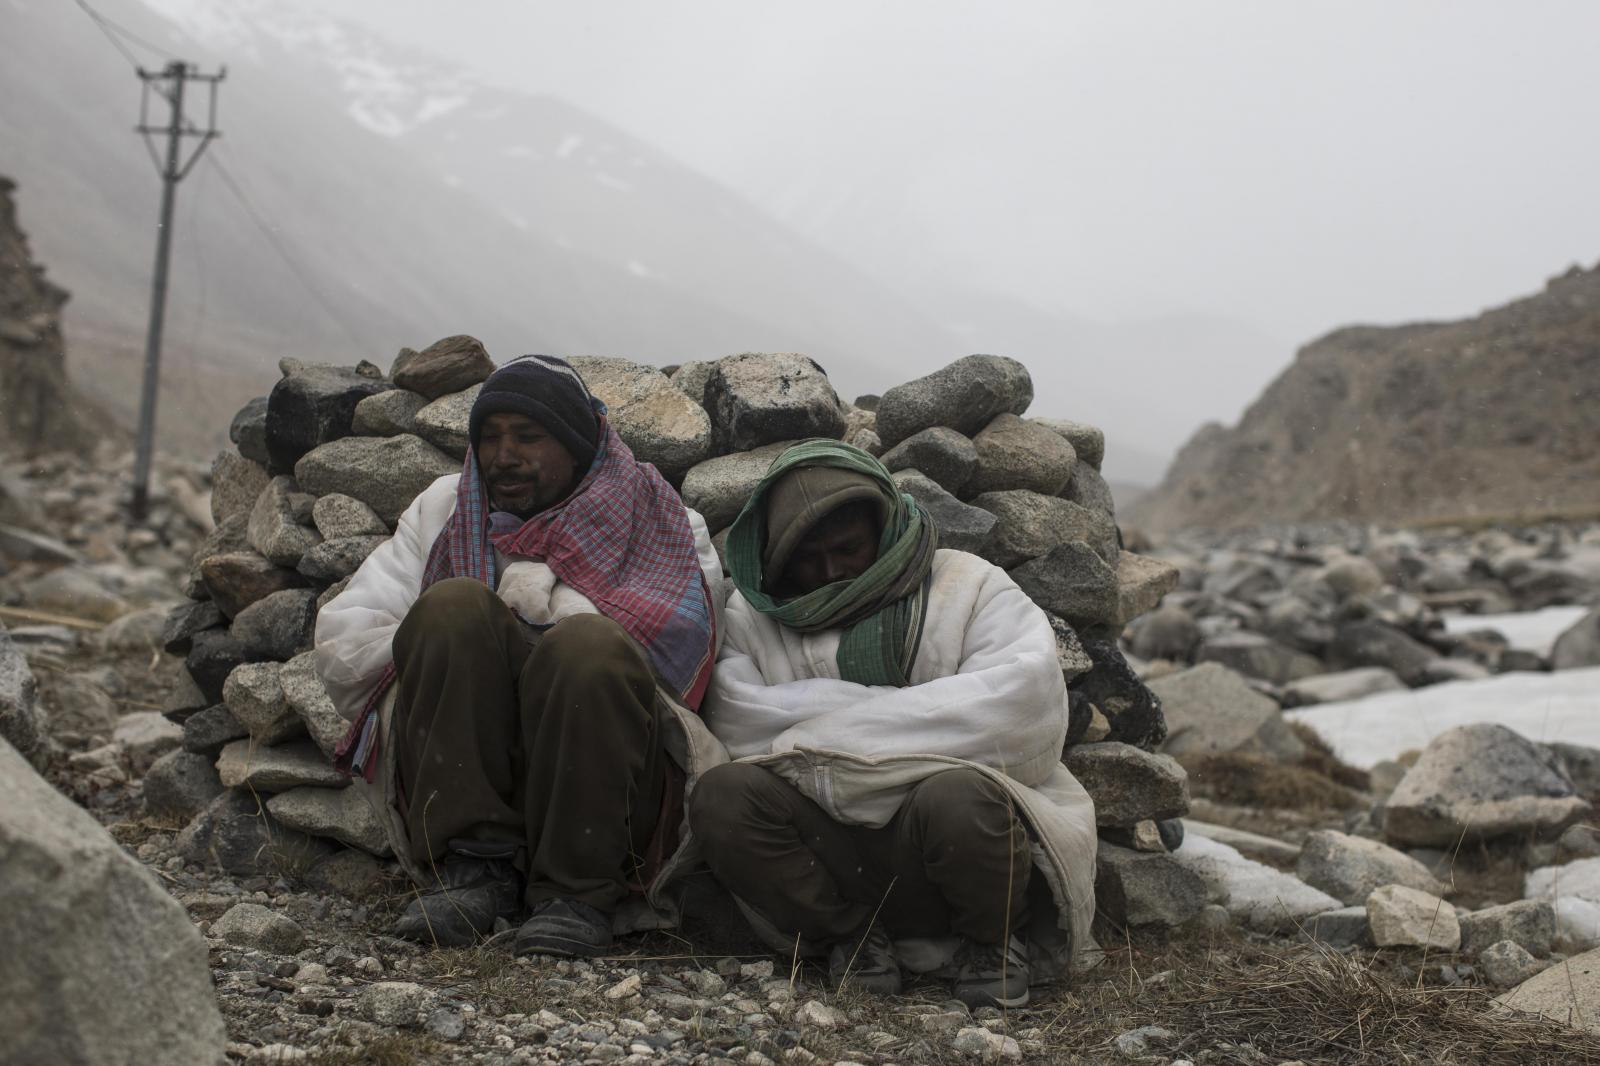 Raj Shekhar (L), 33, and Tej Narayan, 30, road maintenance workers from Jharkhand state, take shelter behind rocks during inclement weather along Pangong Lake road near the Chang La pass in northern India's Ladakh region.